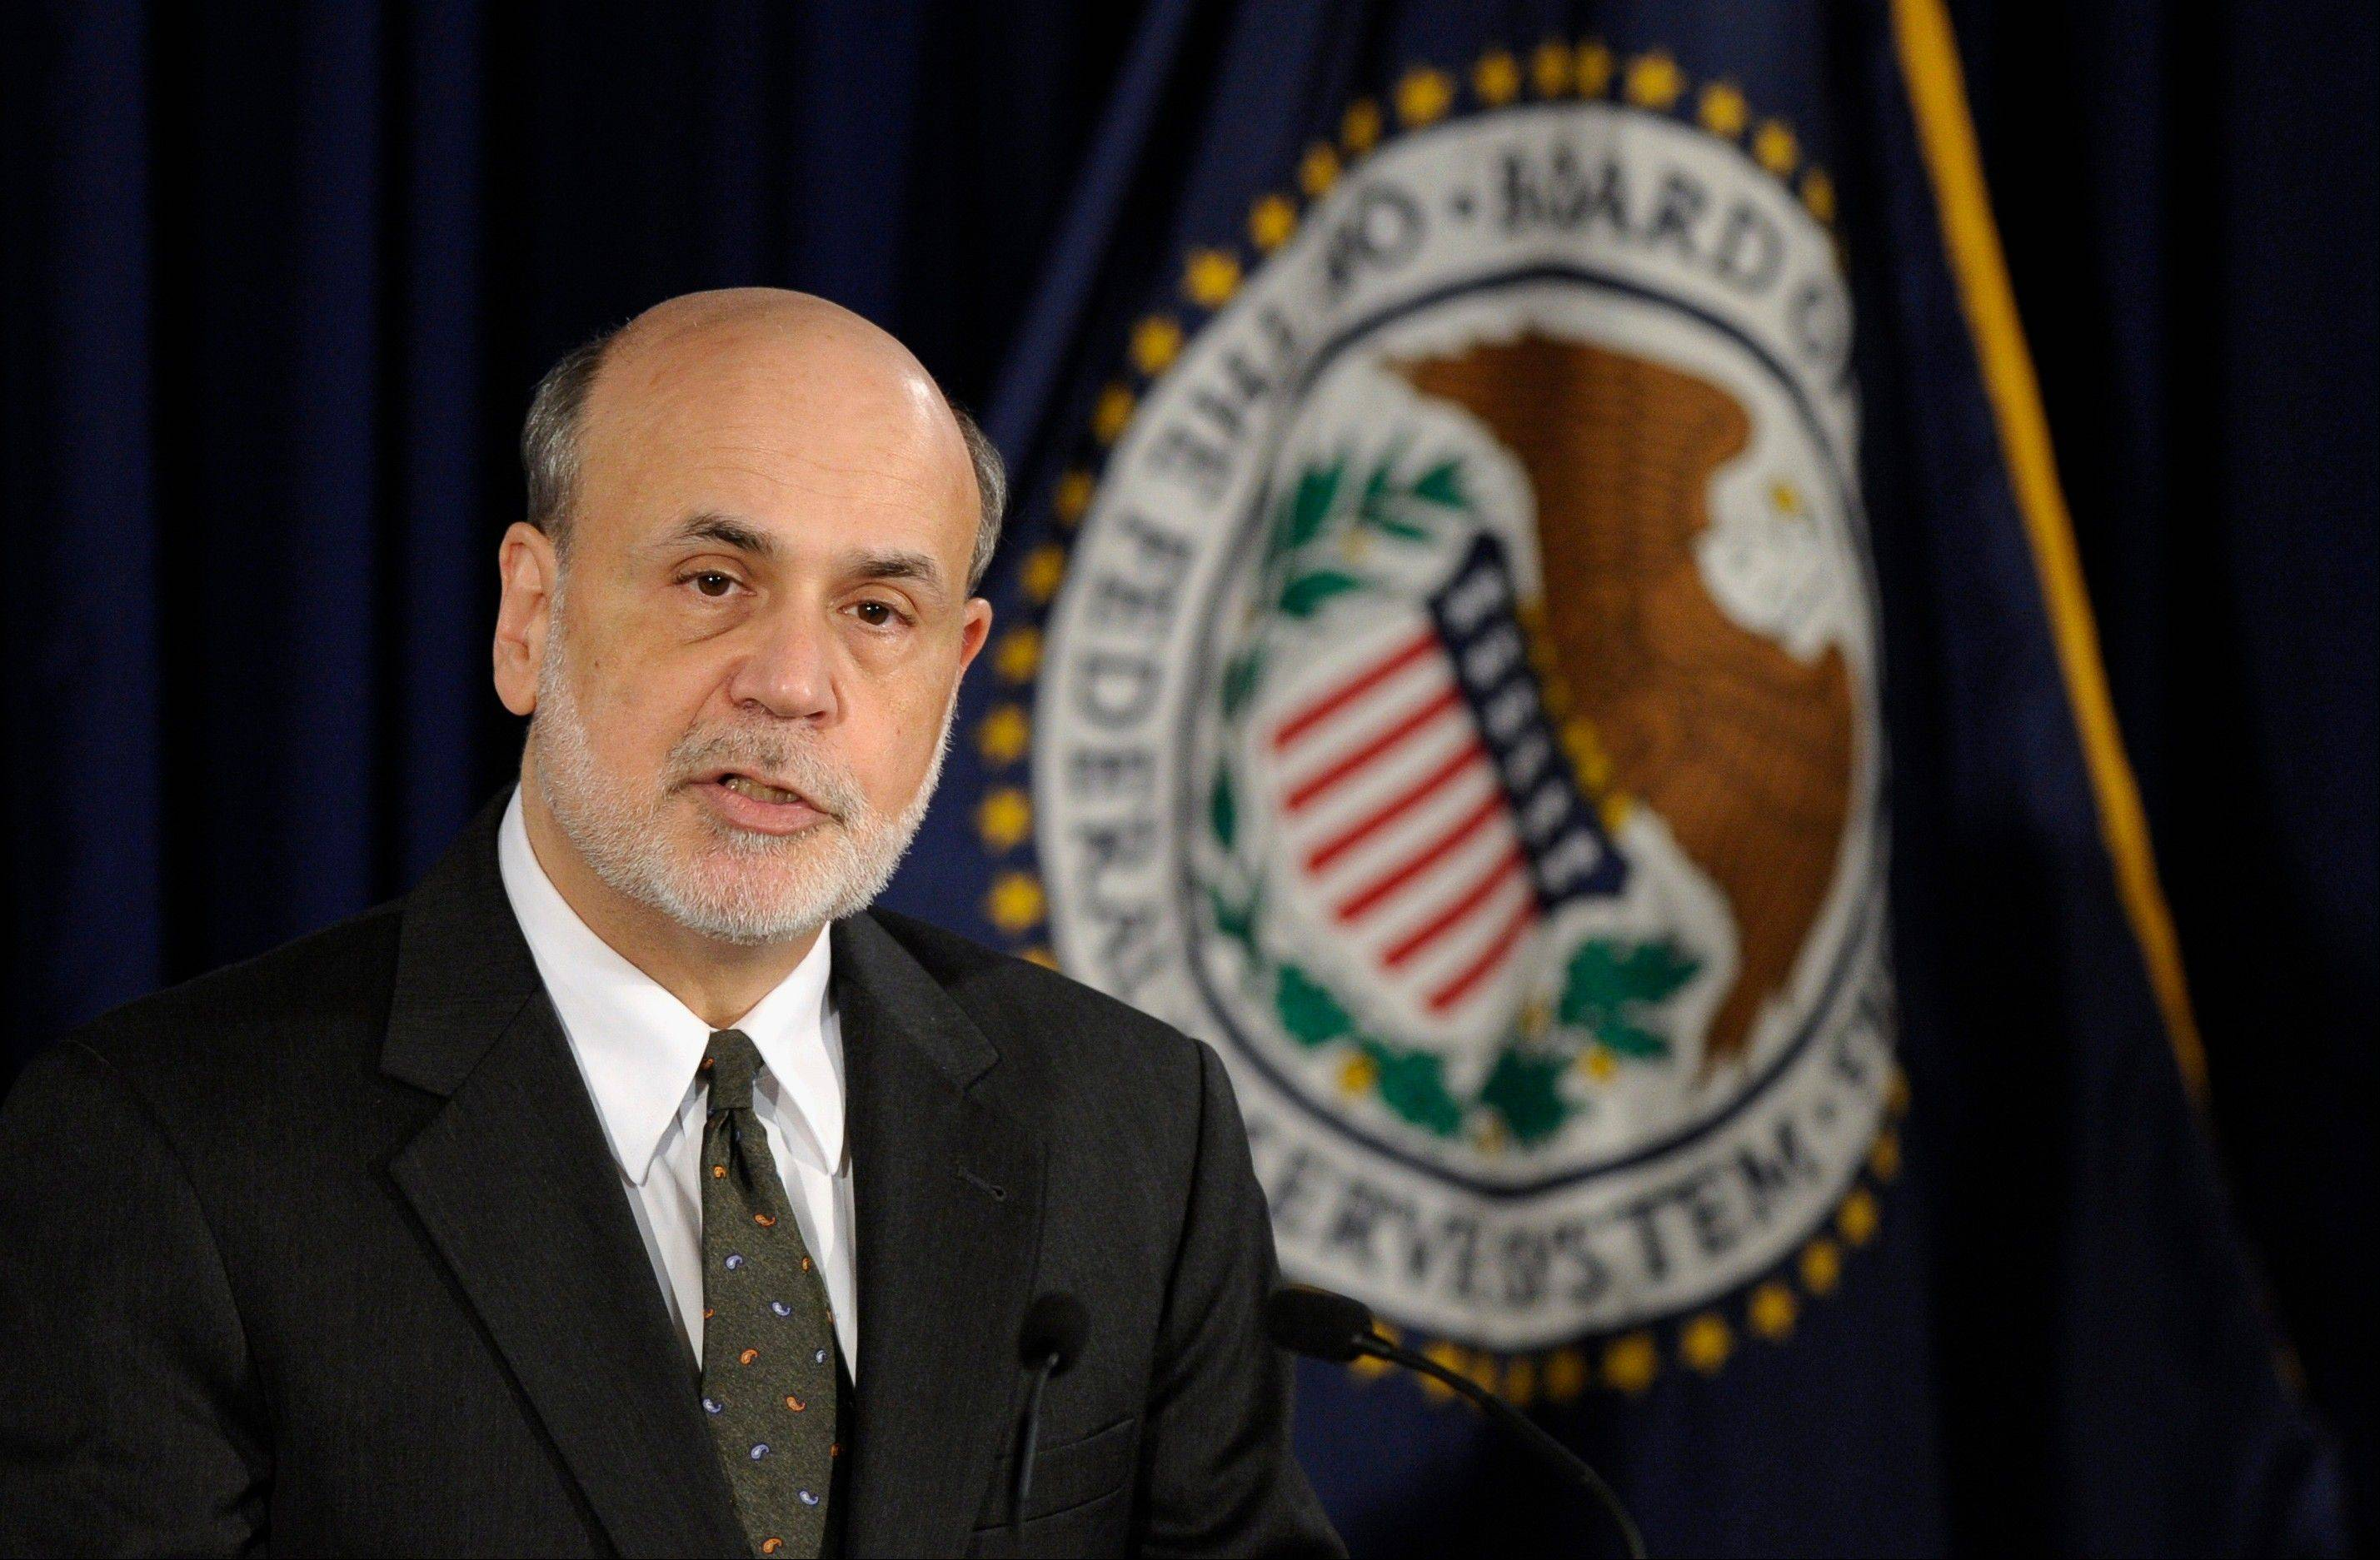 Federal Reserve Chairman Ben Bernanke speaks during a news conference Wednesday, after the Fed said it will maintain the pace of its bond-buying program to keep long-term interest rates at record lows.